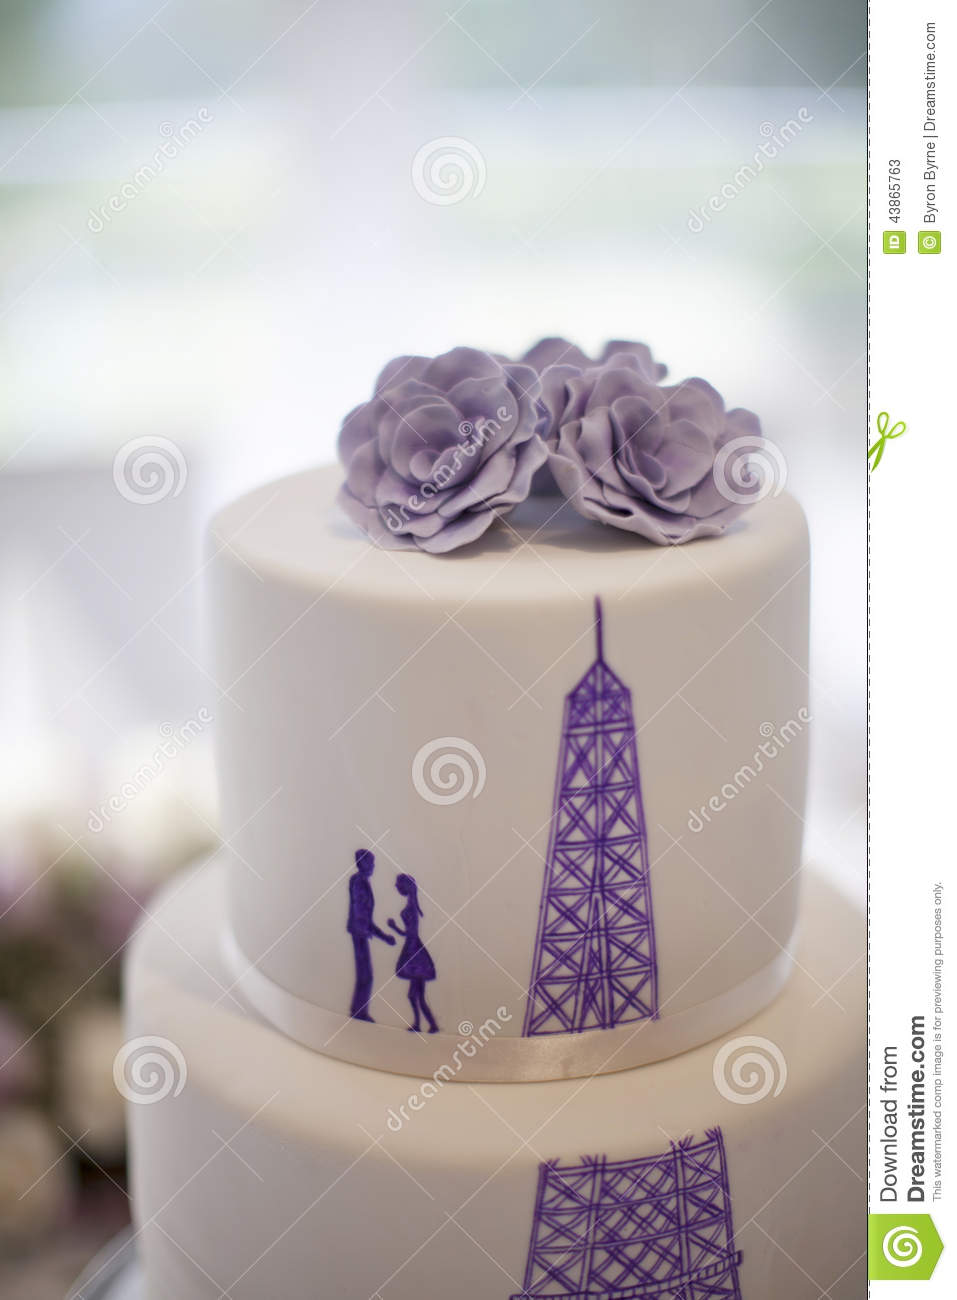 wedding cake closeup with silhouette of a couple and the